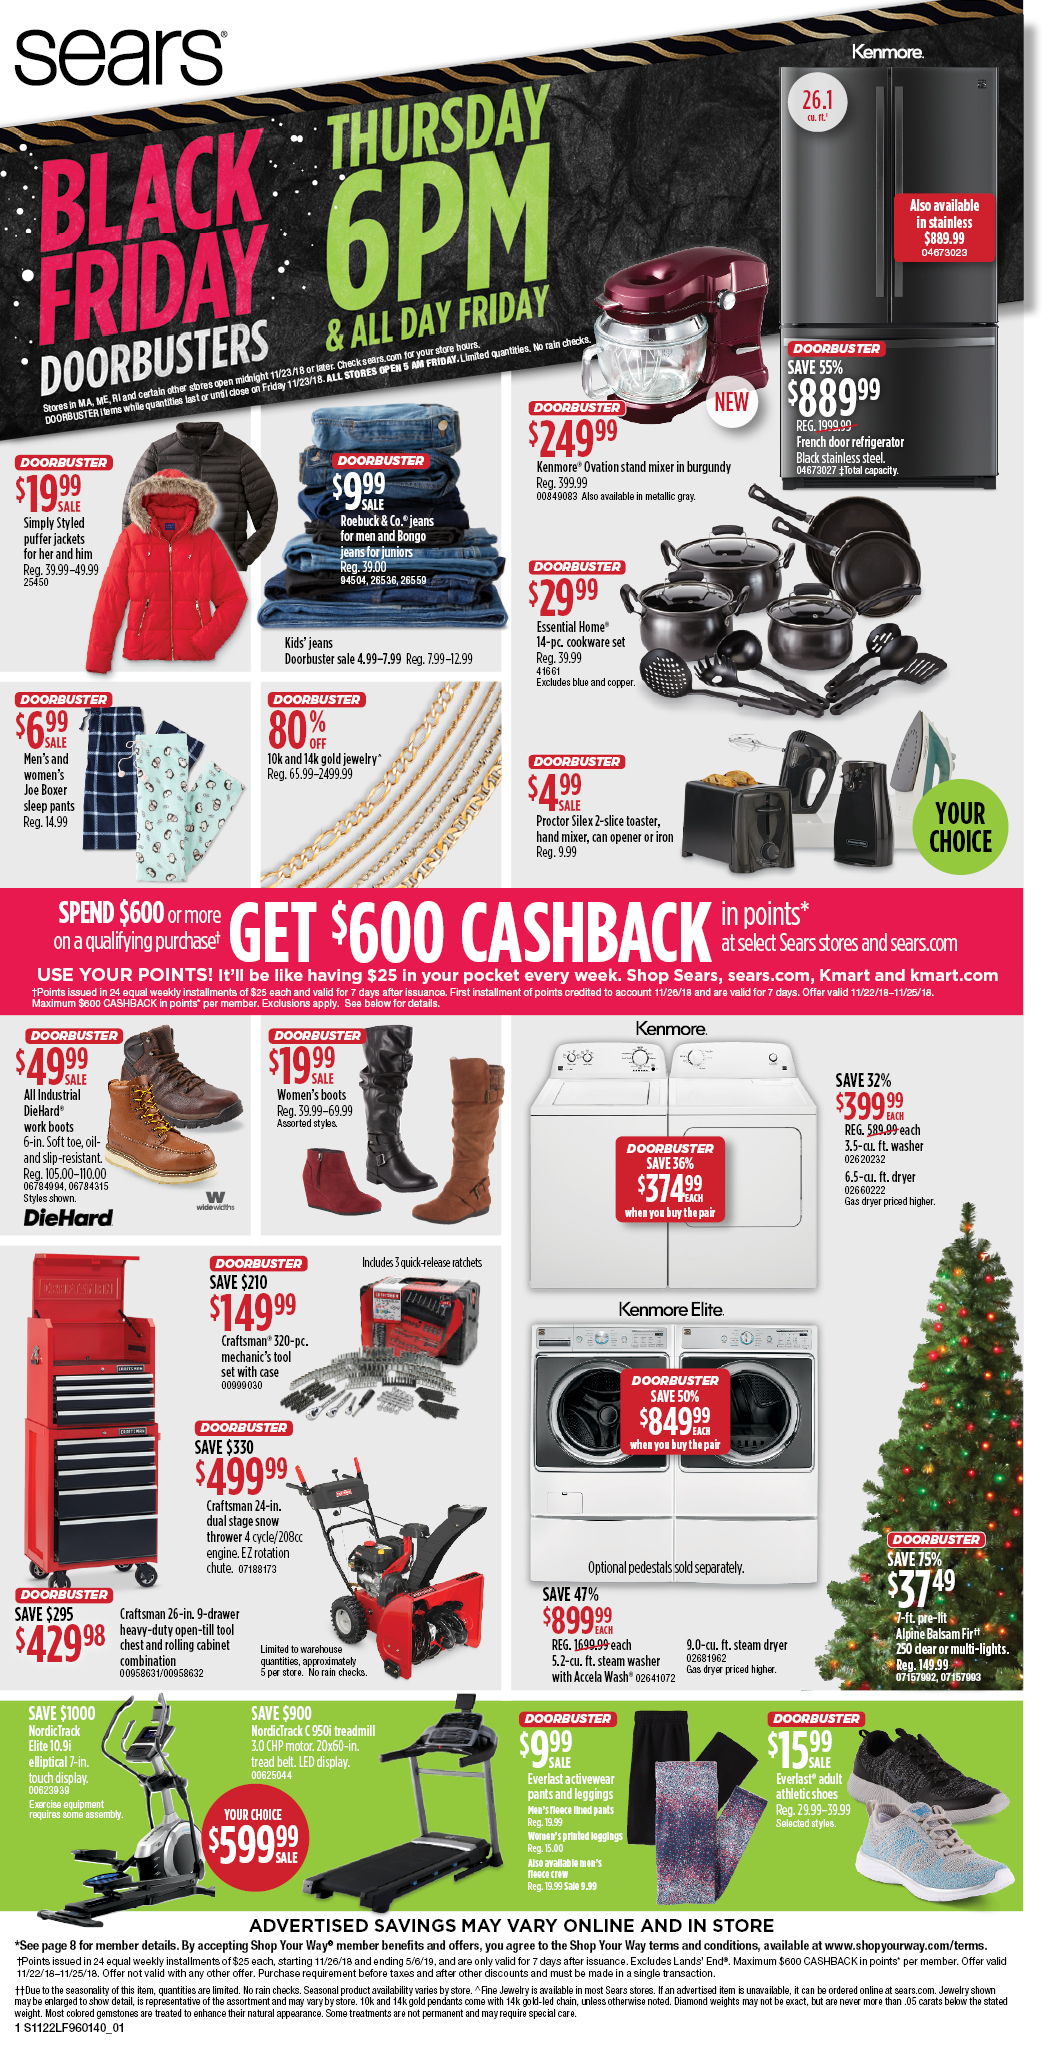 Sears Black Friday Ad 2018 - Page  (1)